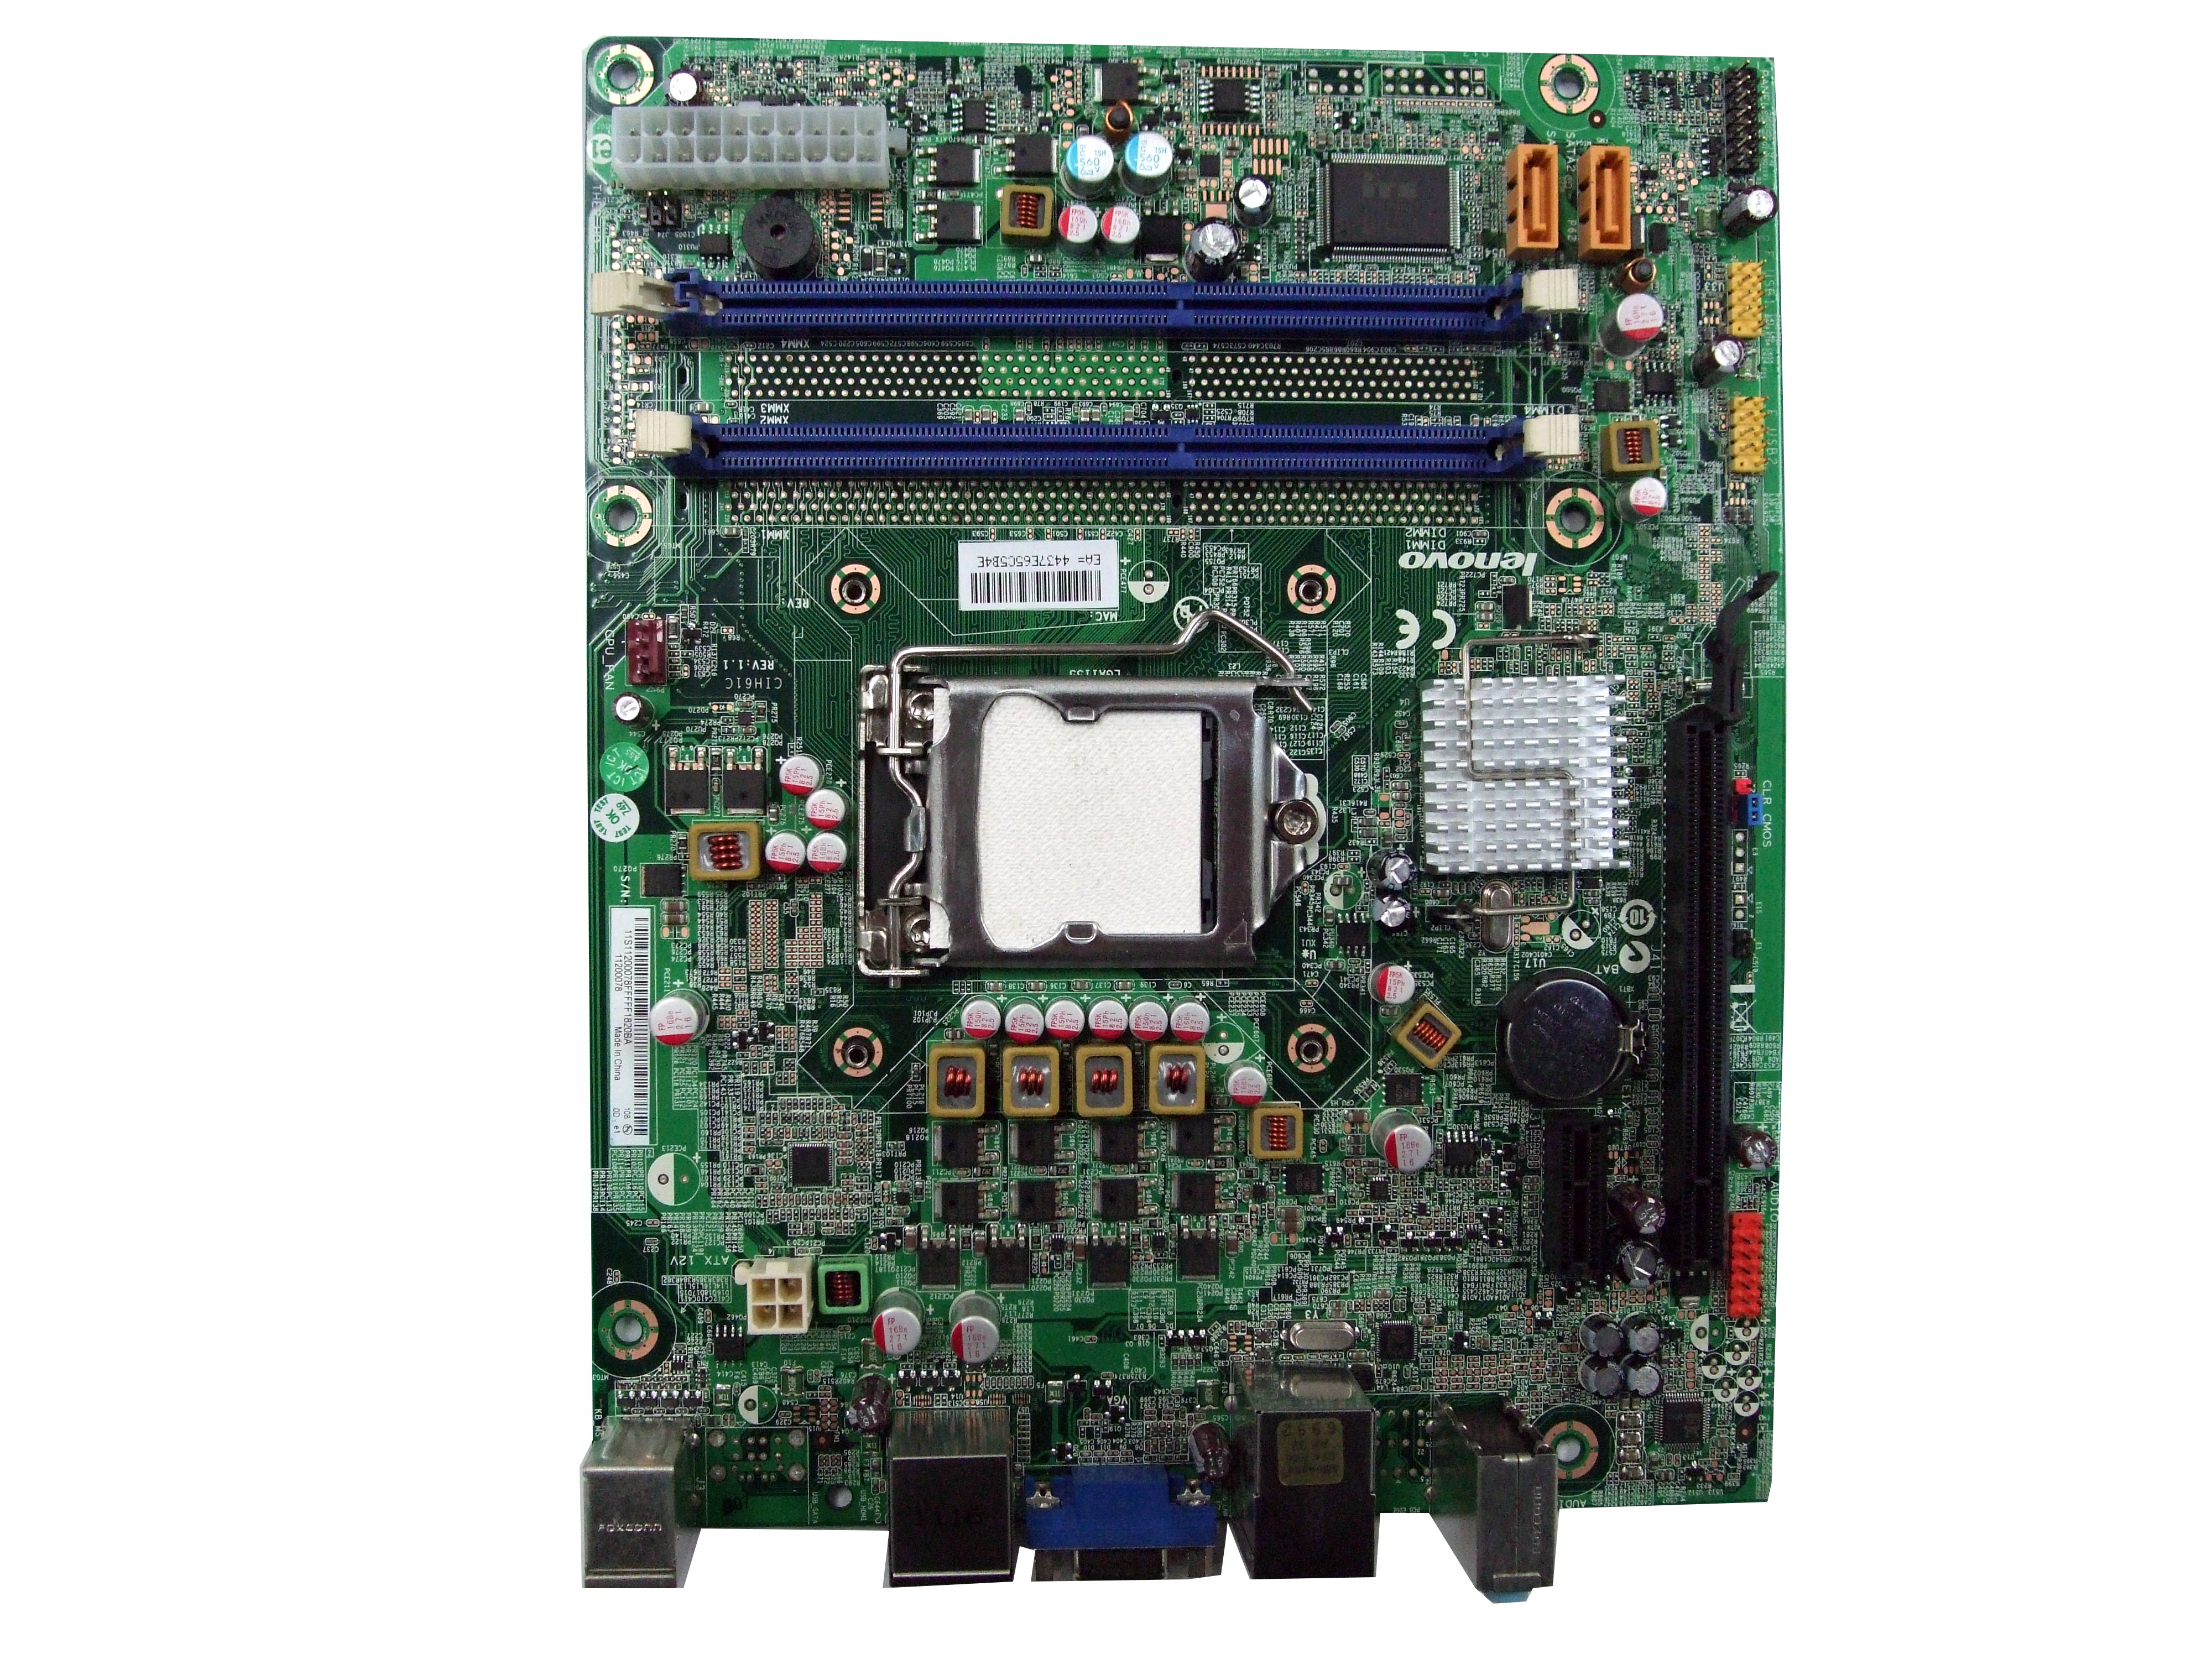 CIH61C Lenovo LGA1155 Sandy Bridge Motherboard from H330 Desktop PC Enlarged Preview